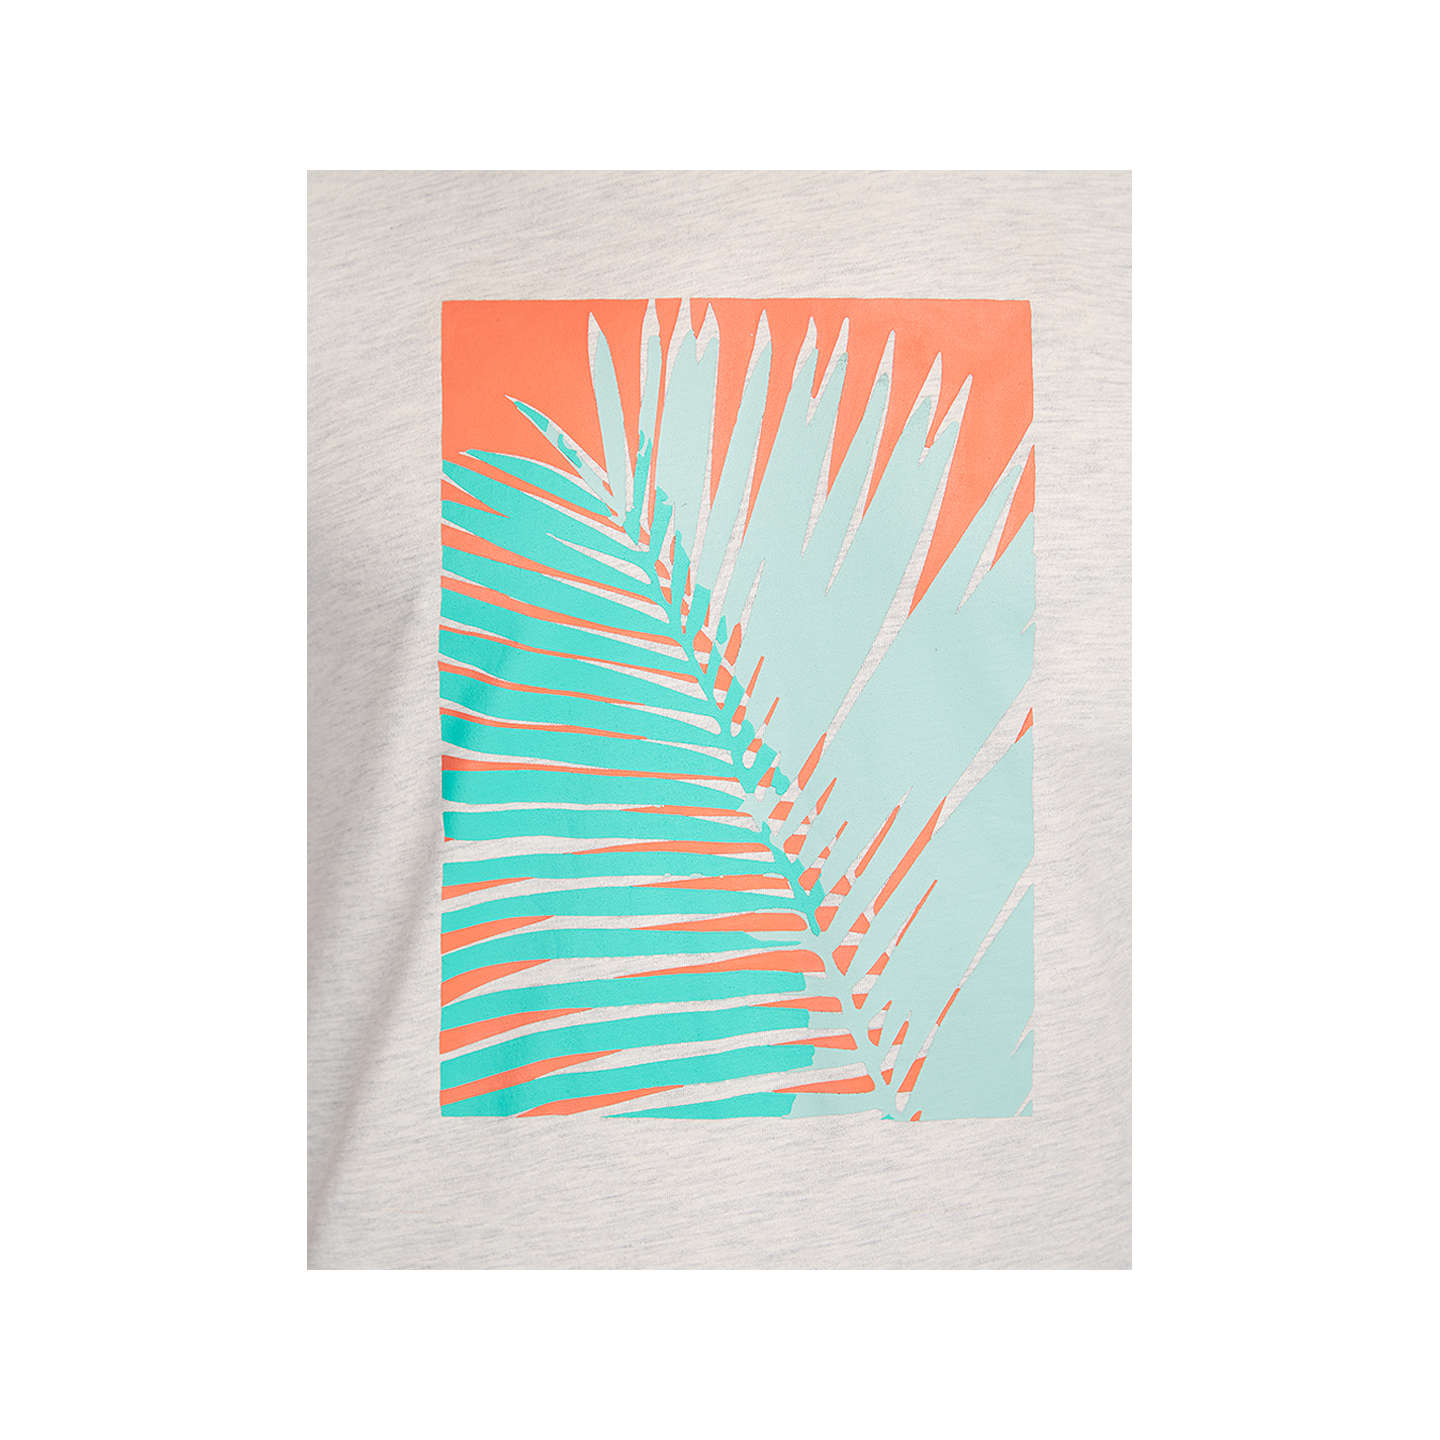 BuyHYMN Penzance Tropical Graphic T-Shirt, Off White, S Online at johnlewis.com